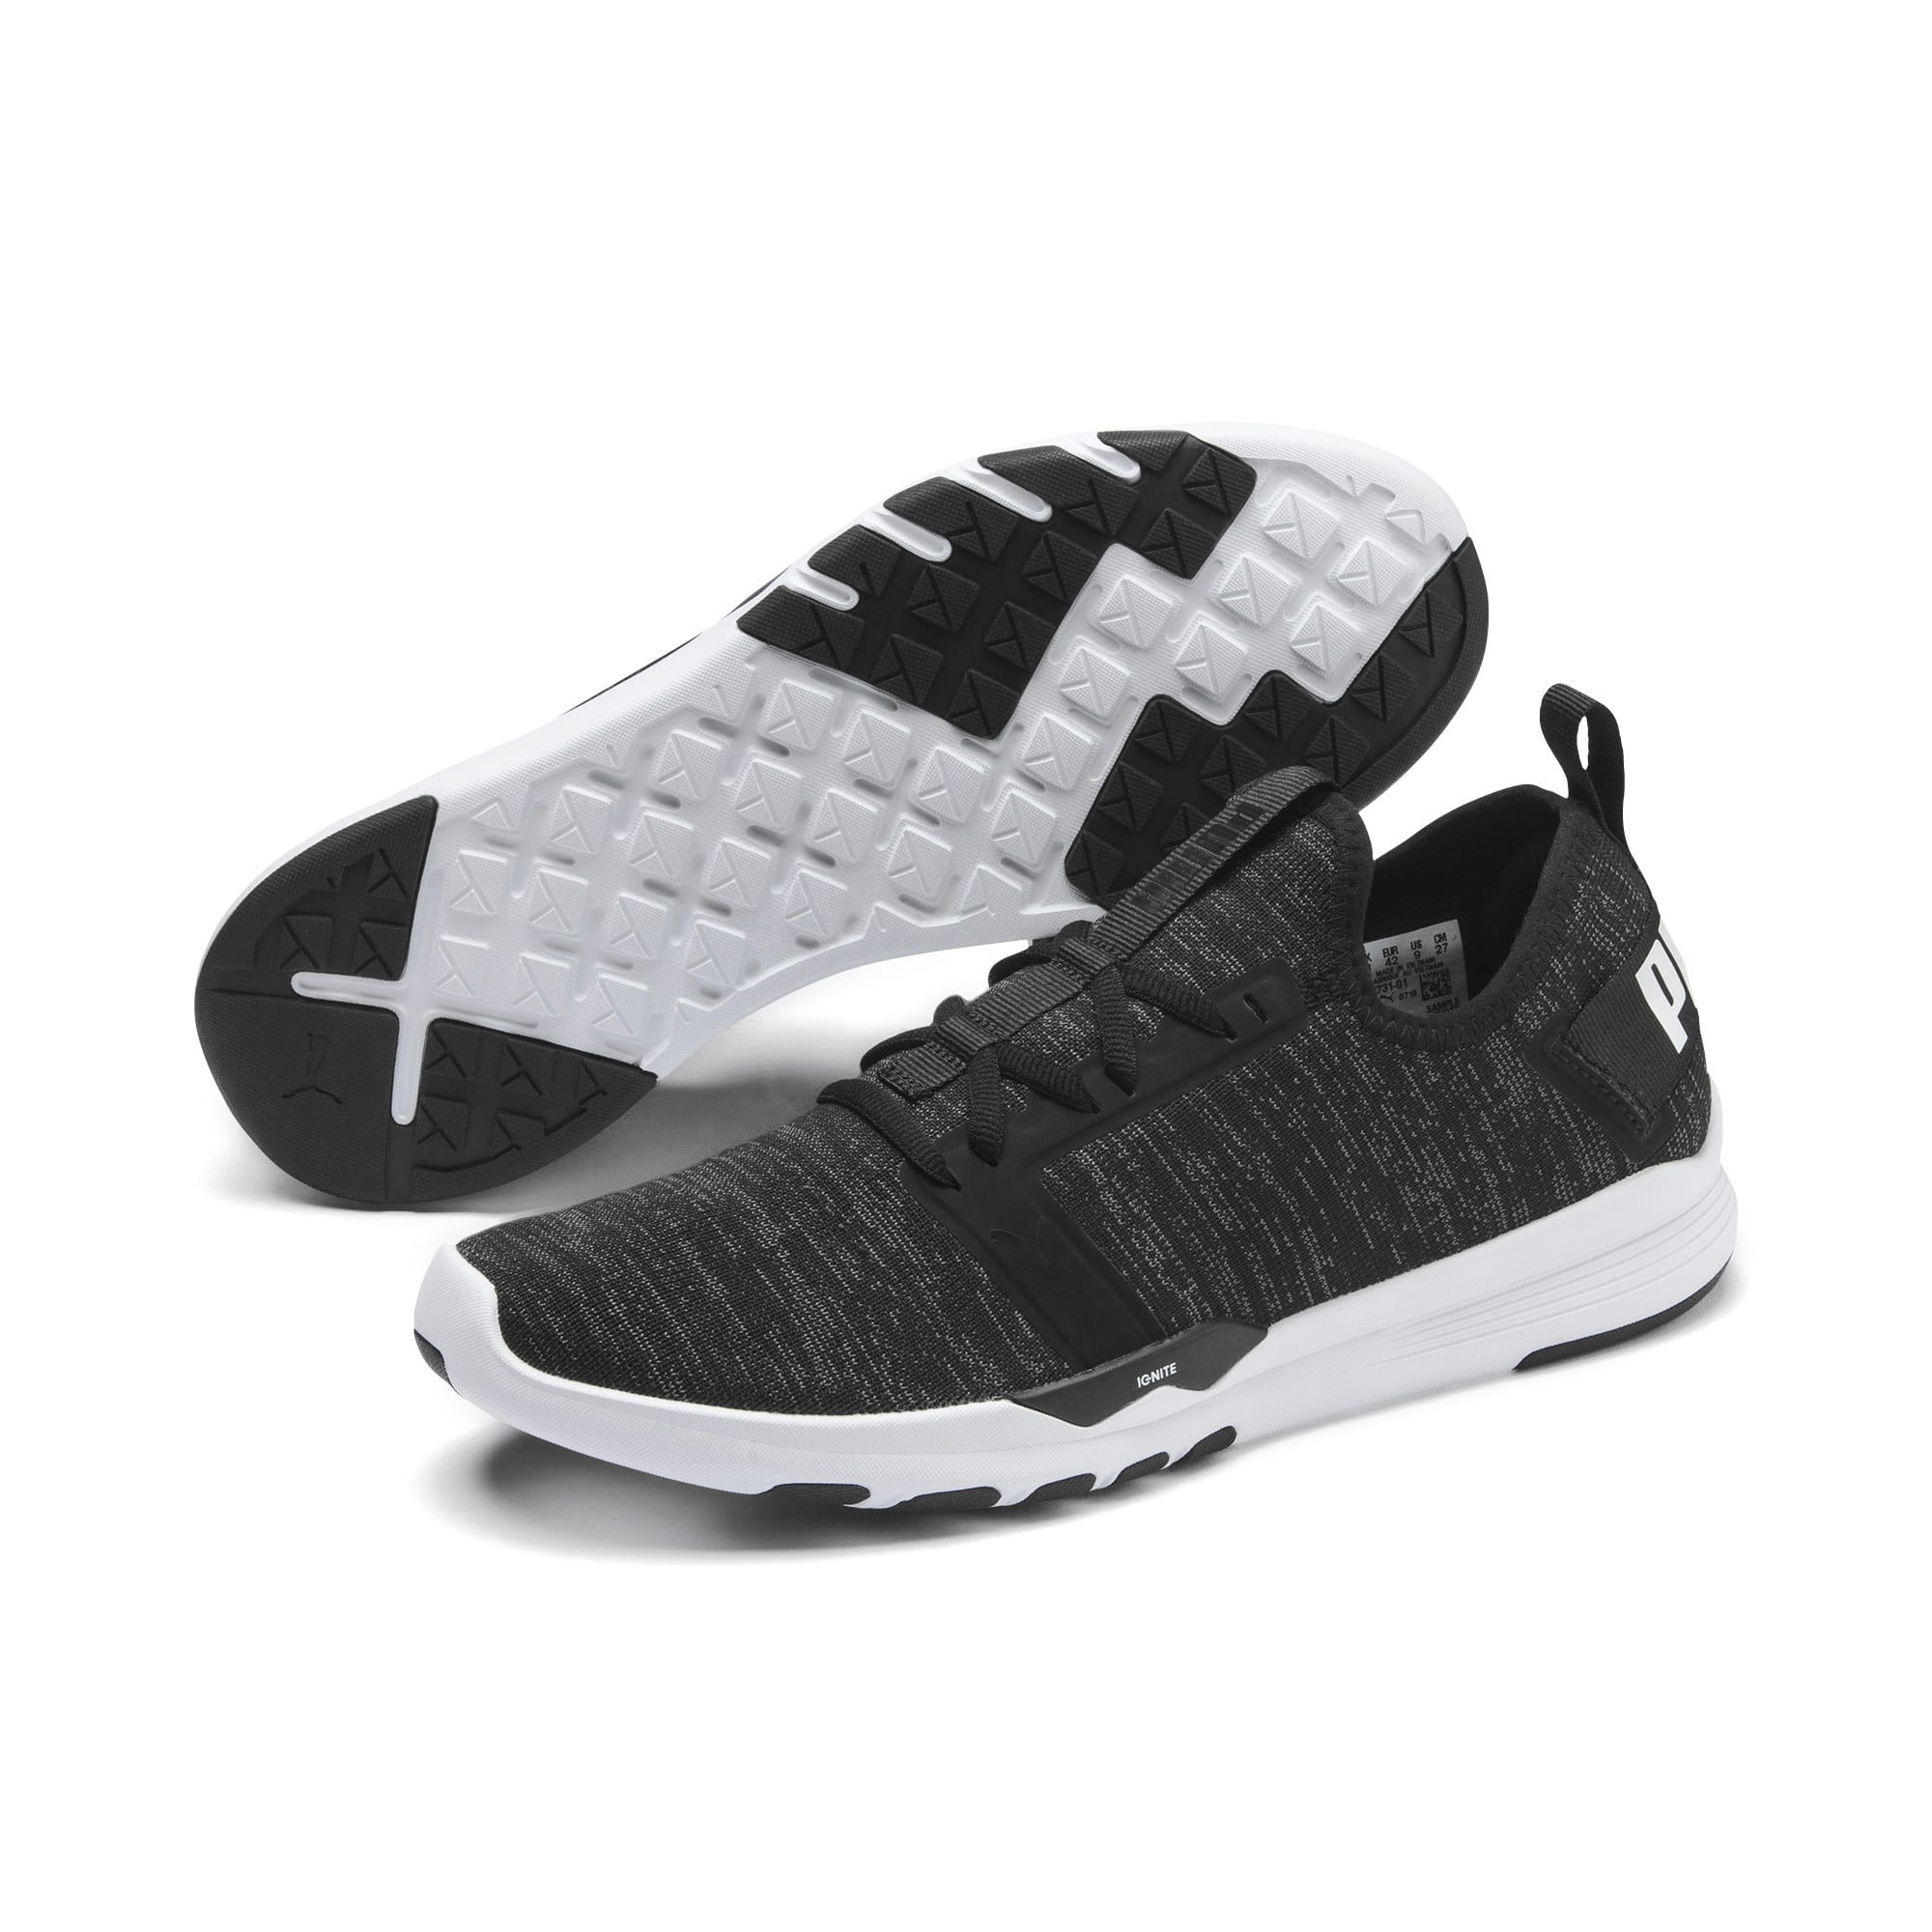 Thumbnail 4 of IGNITE Contender Knit Men's Running Shoes, Puma Black-Puma White, medium-IND